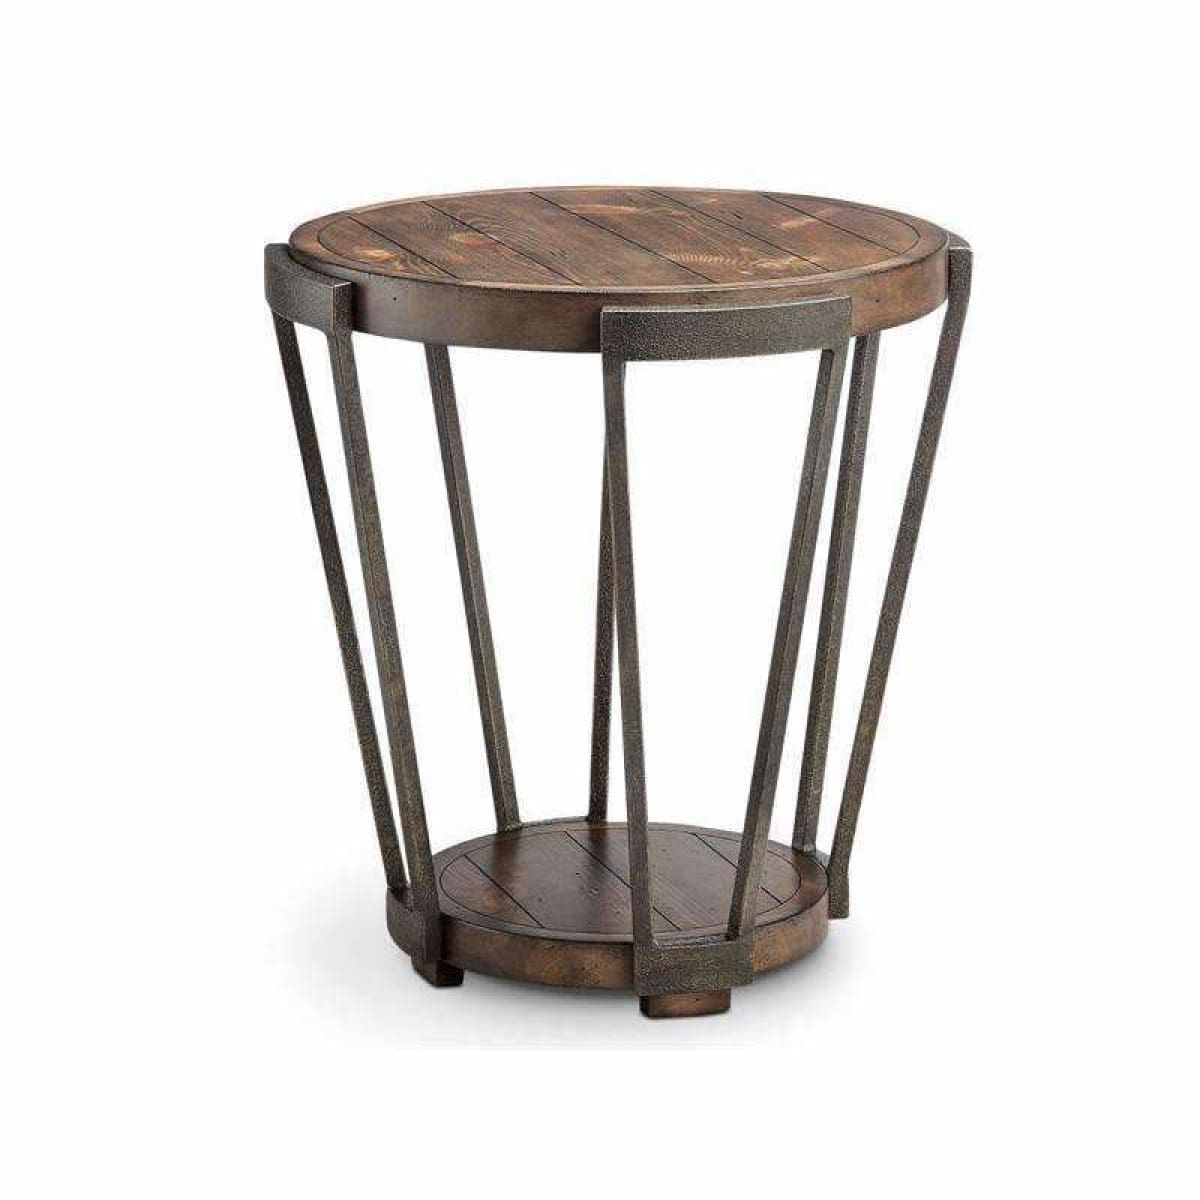 Yukon Round End Table - END TABLE/SIDE TABLE